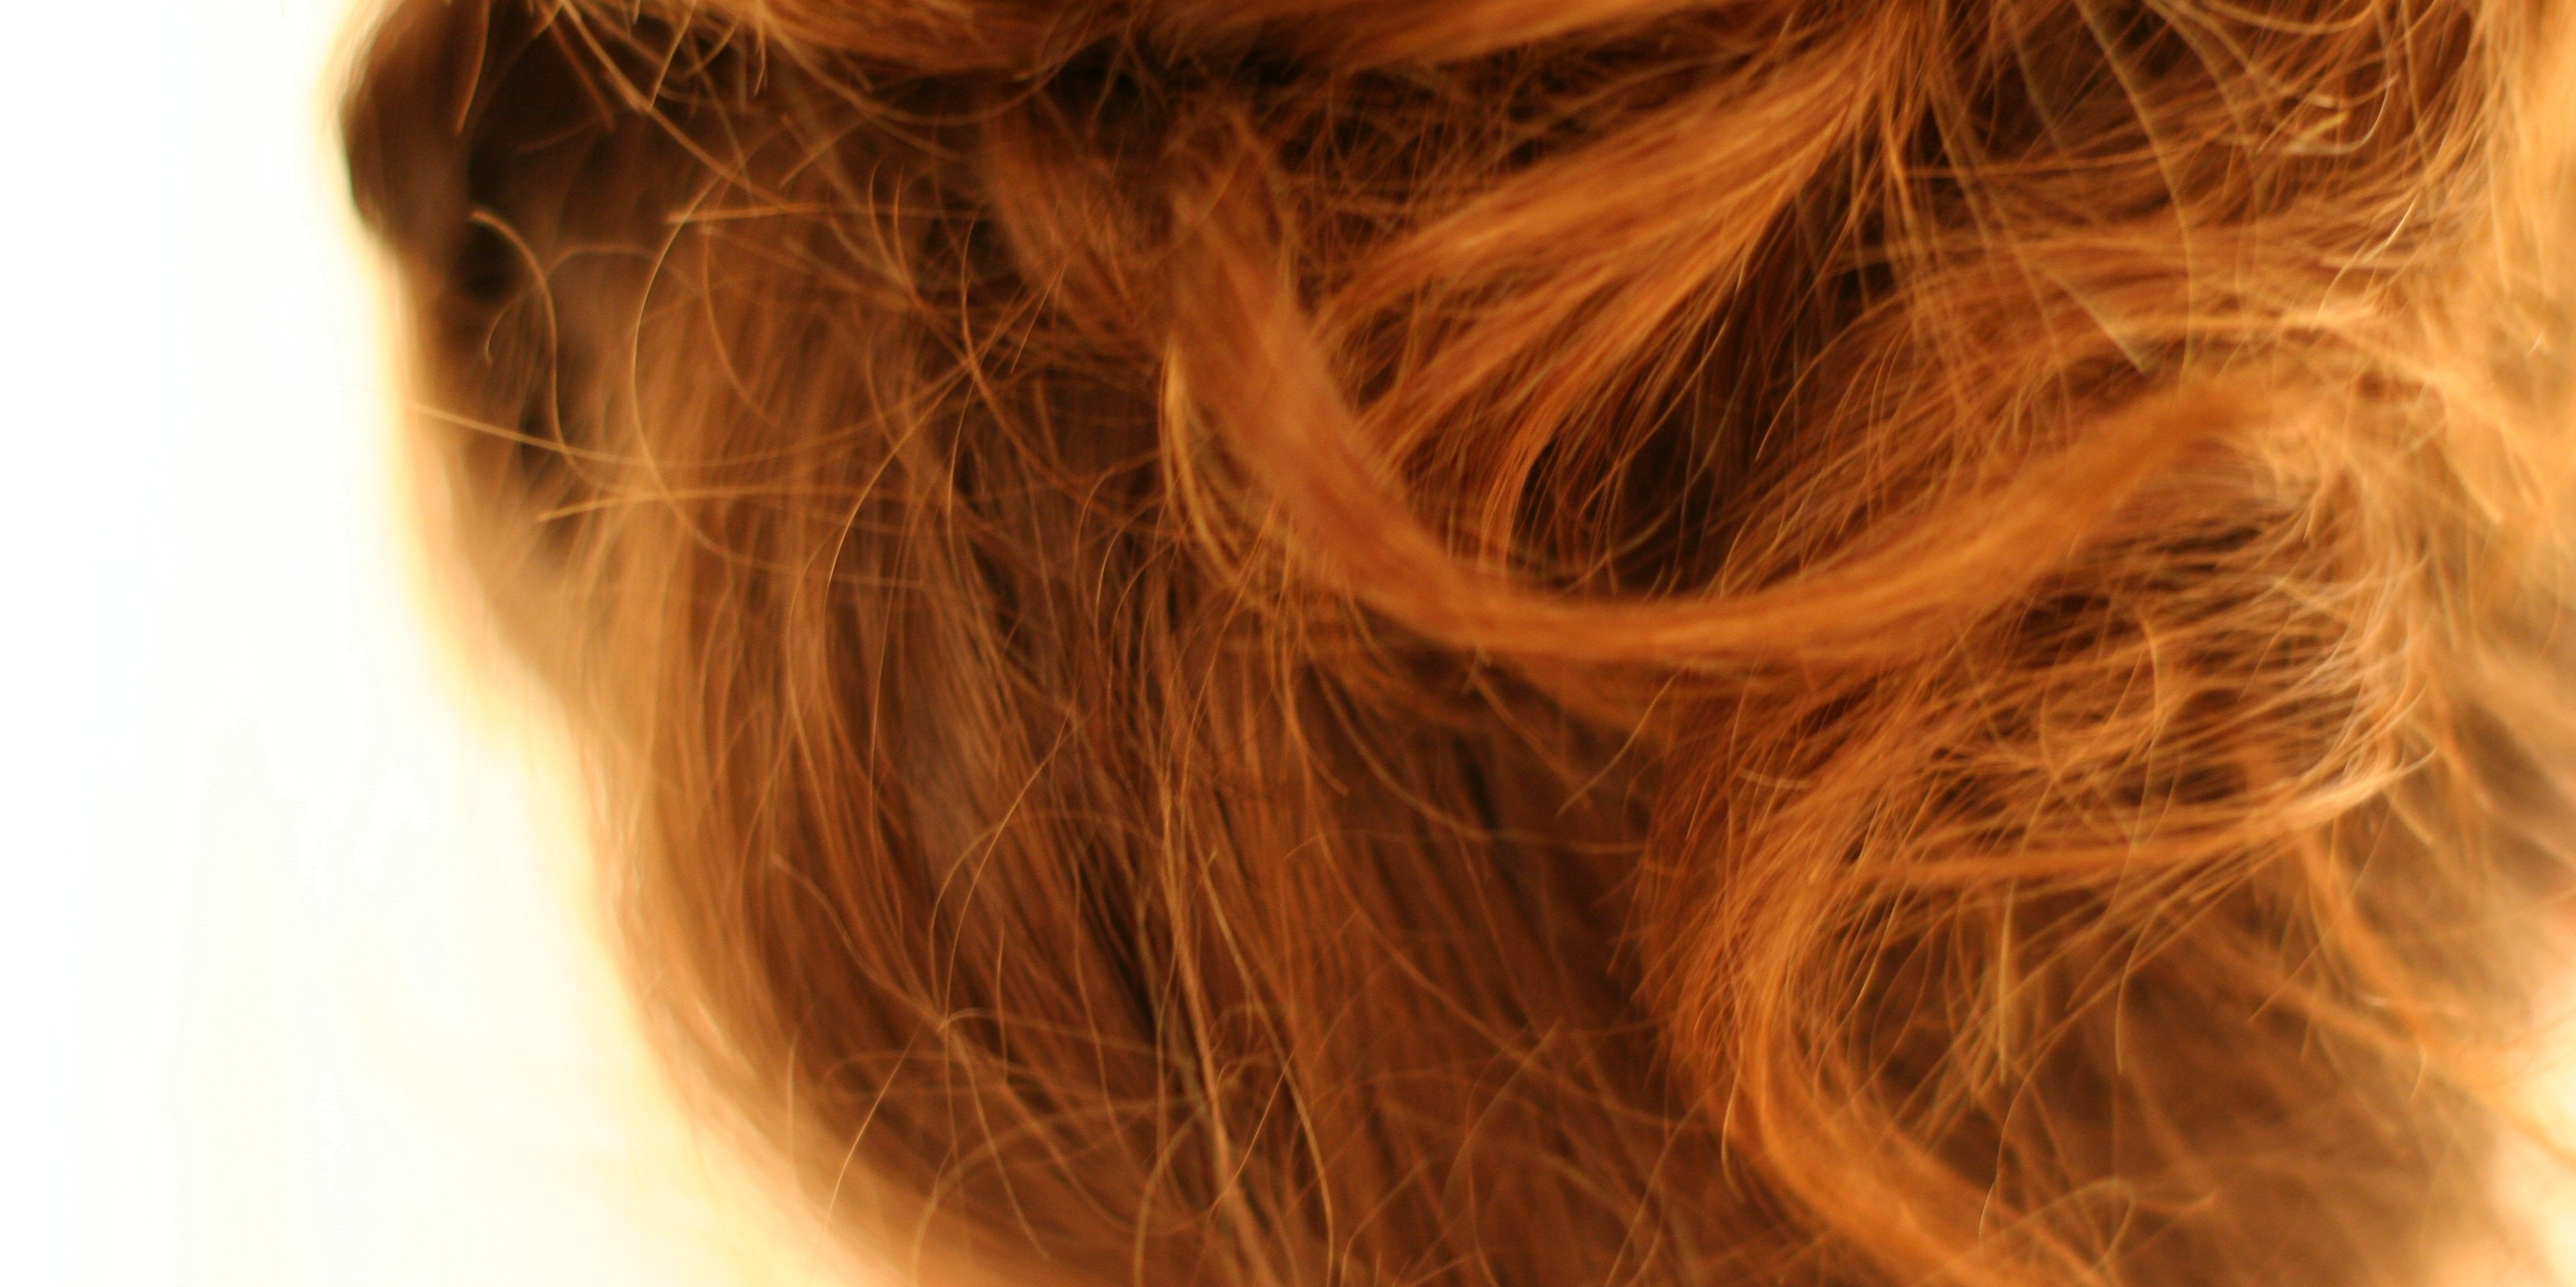 Your Hair Now Reveals These Intimate Personal Details